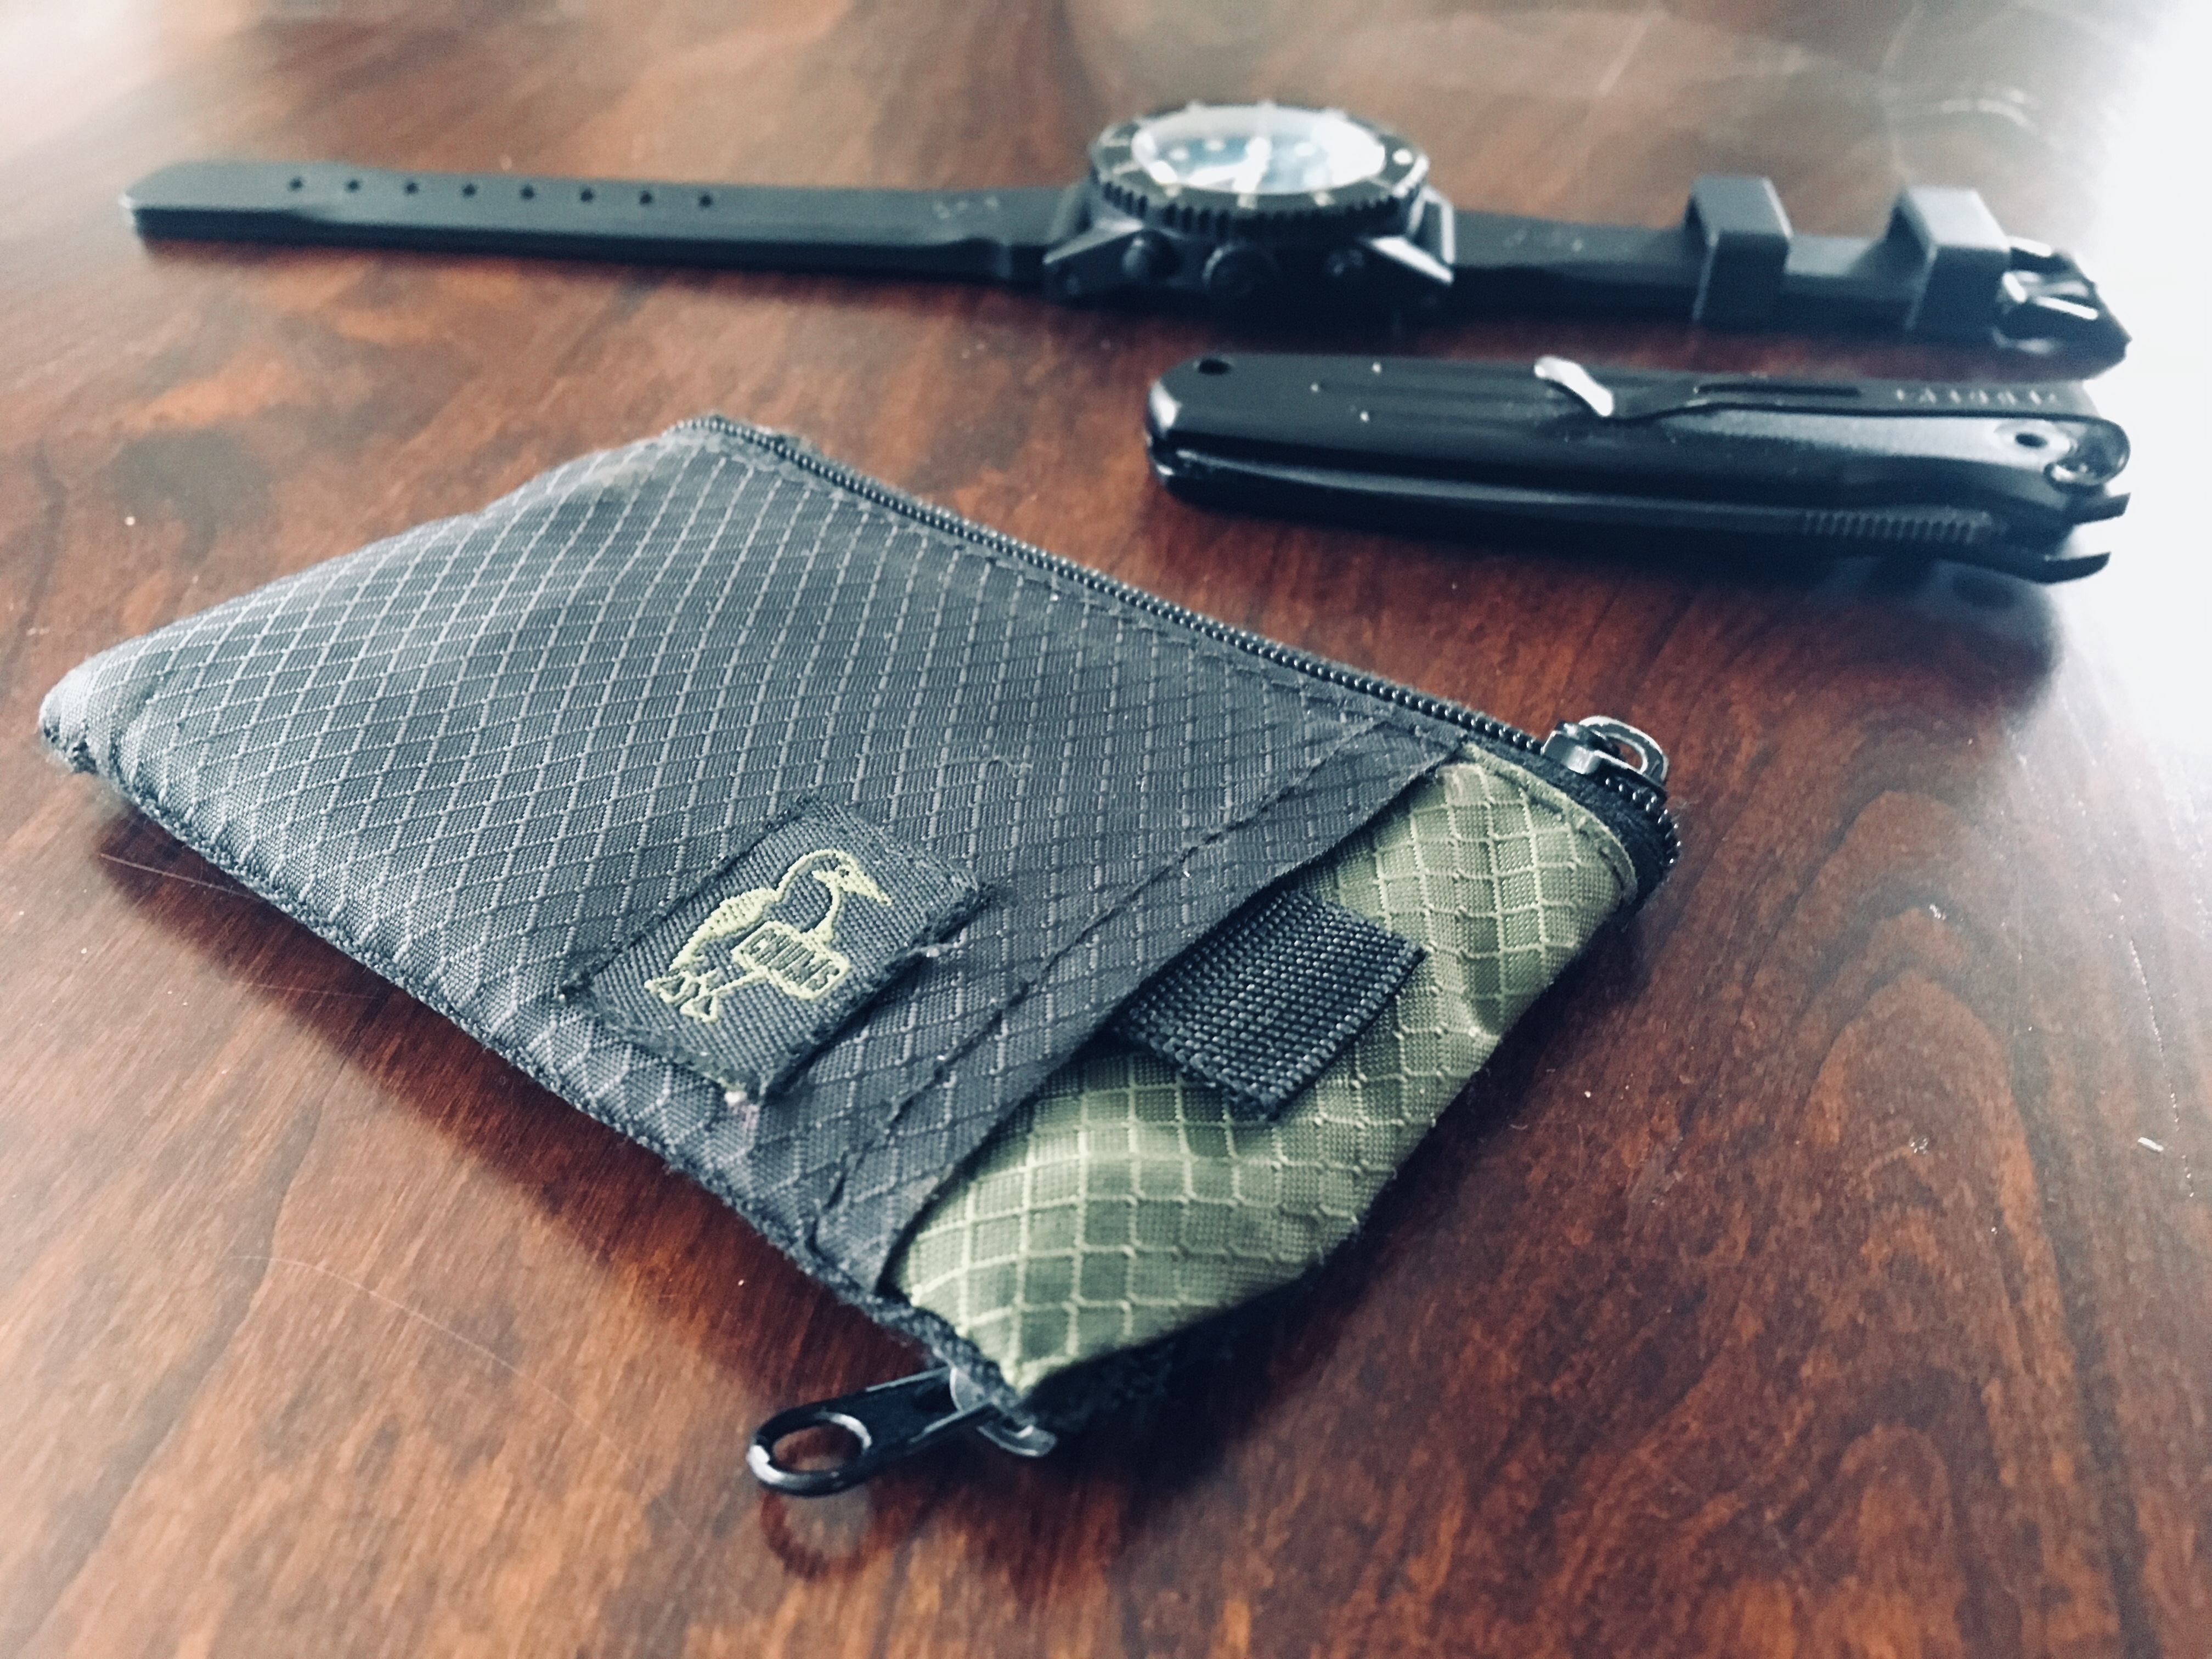 51379e7304 Chums Surfshorts Wallet: The perfect front pocket wallet for an ...